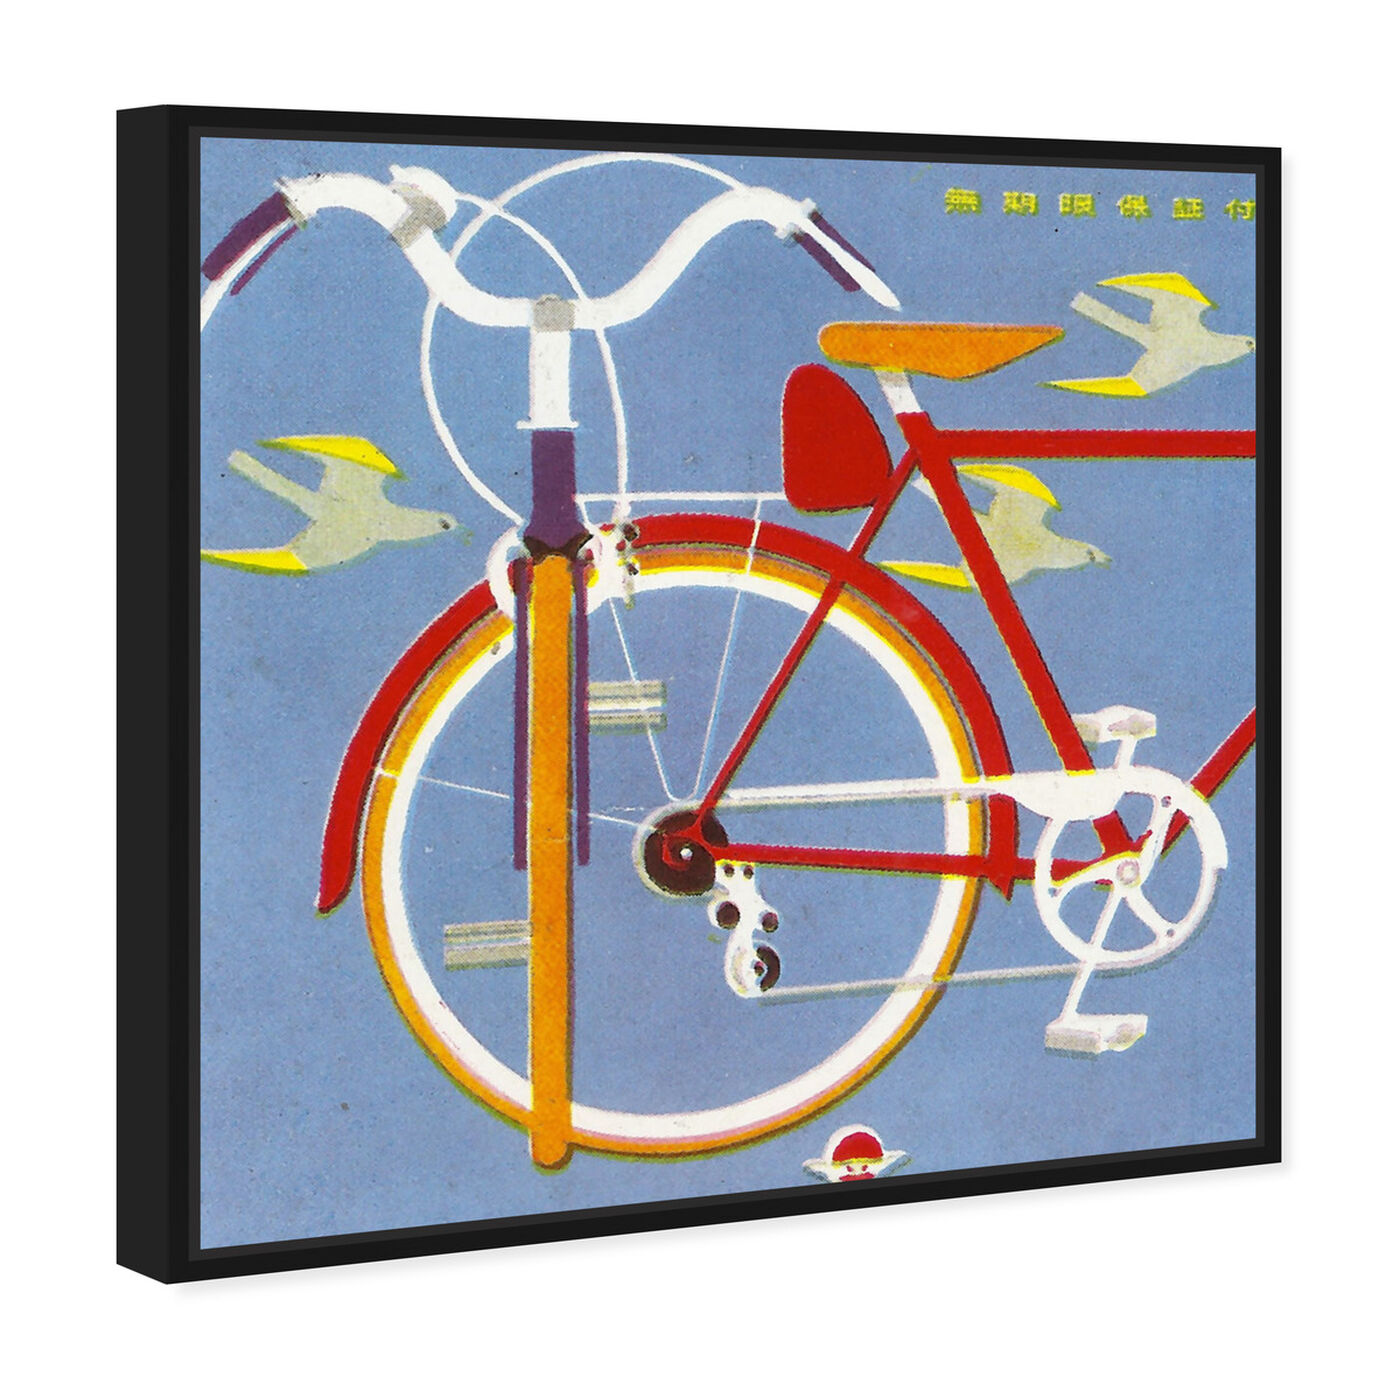 Angled view of Hidori Bicycle featuring transportation and bicycles art.